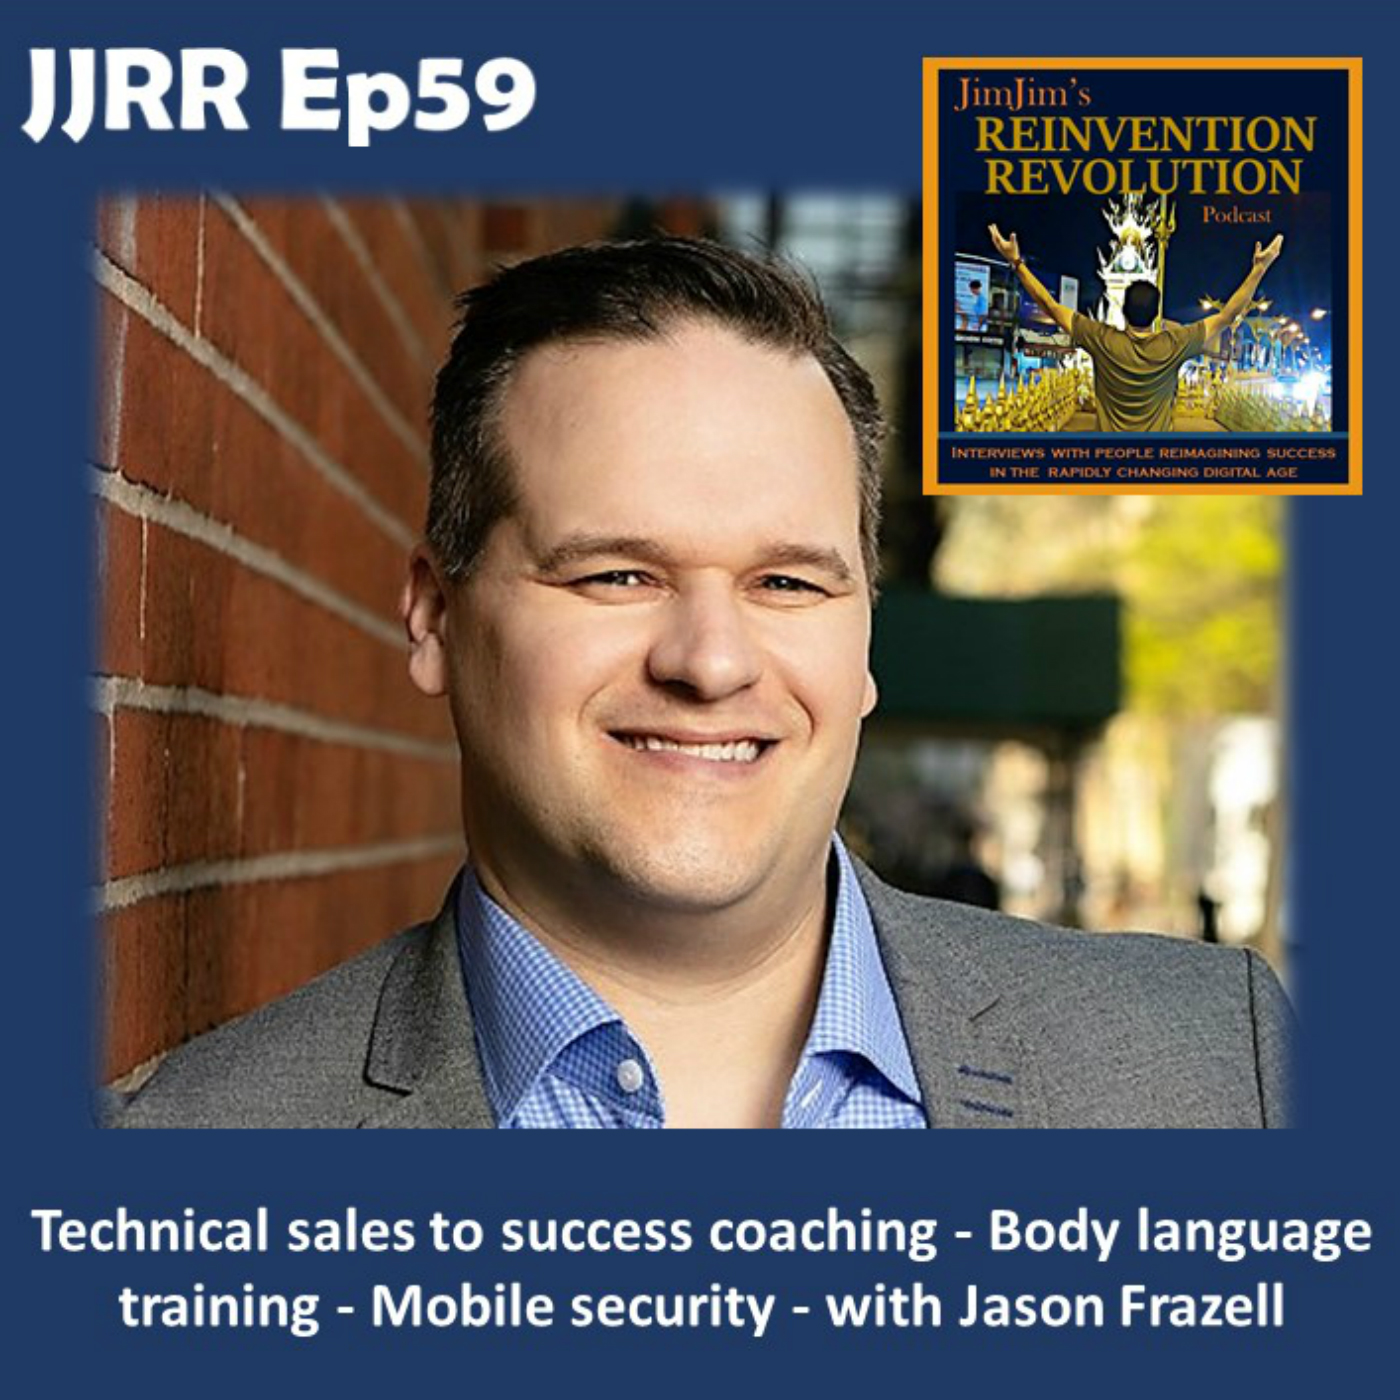 JJRR 59 Technical sales to success coaching – Body language training – Mobile security – with Jason Frazell